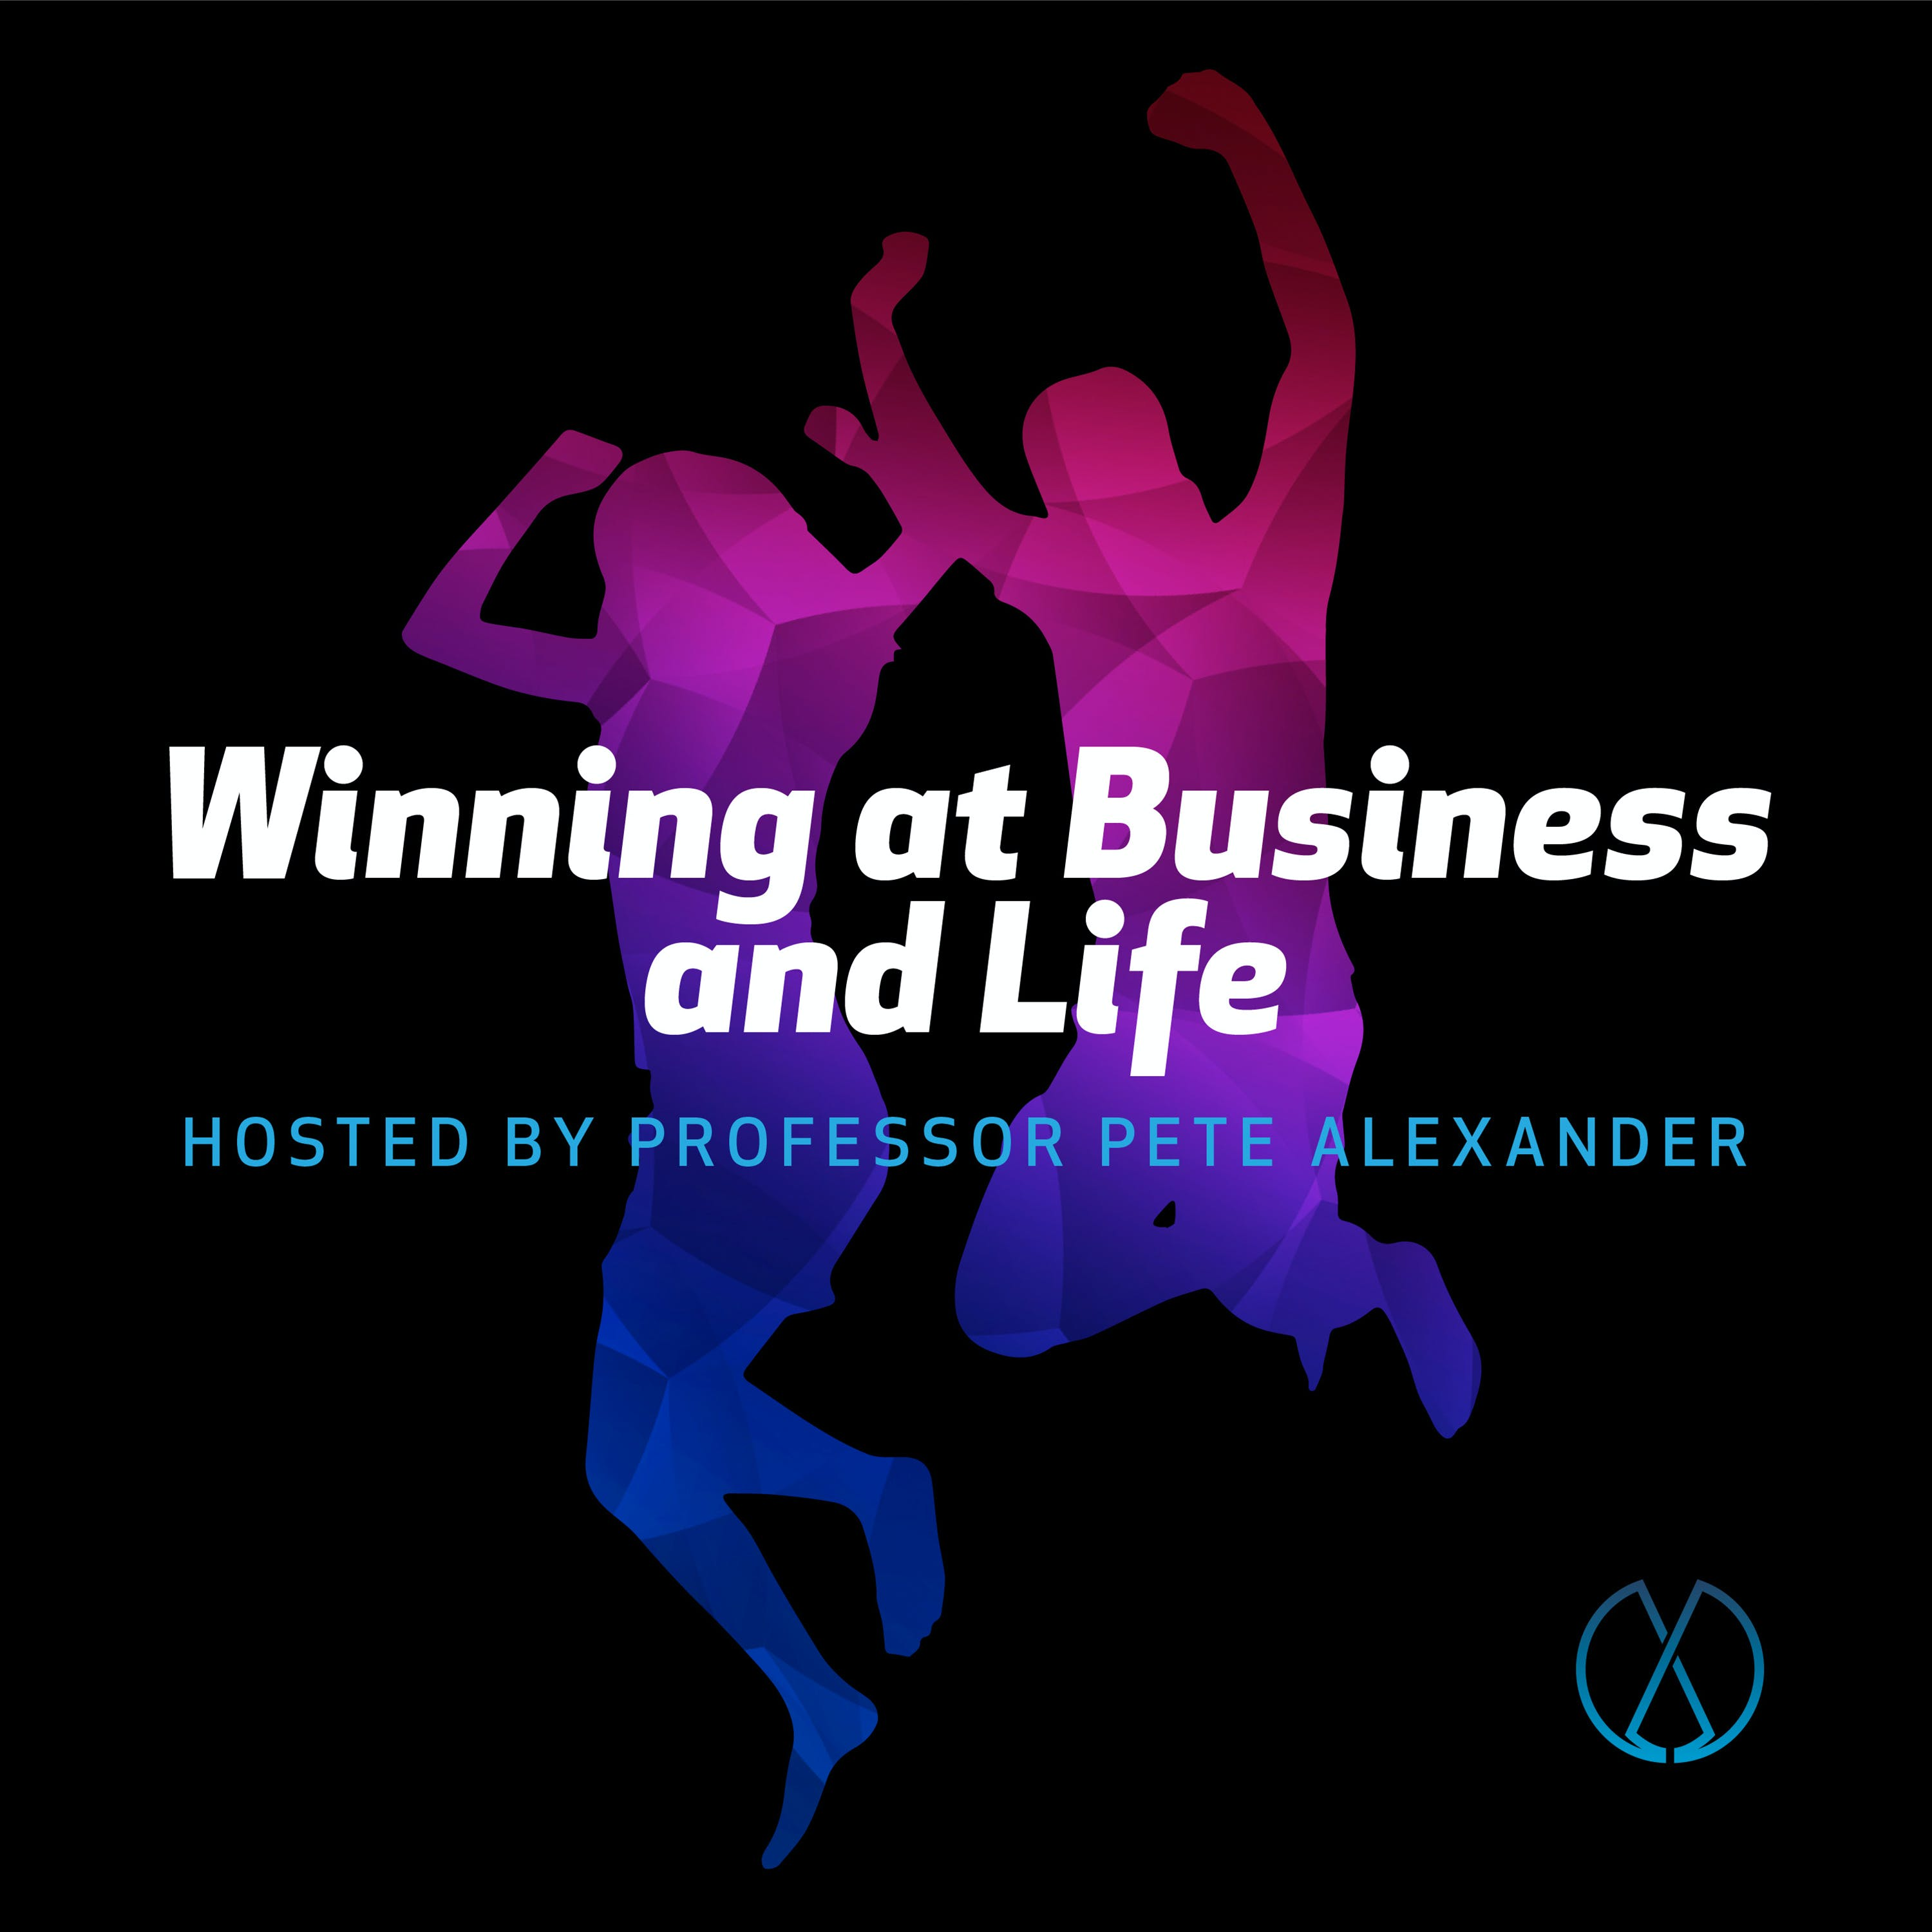 Winning at Business and Life